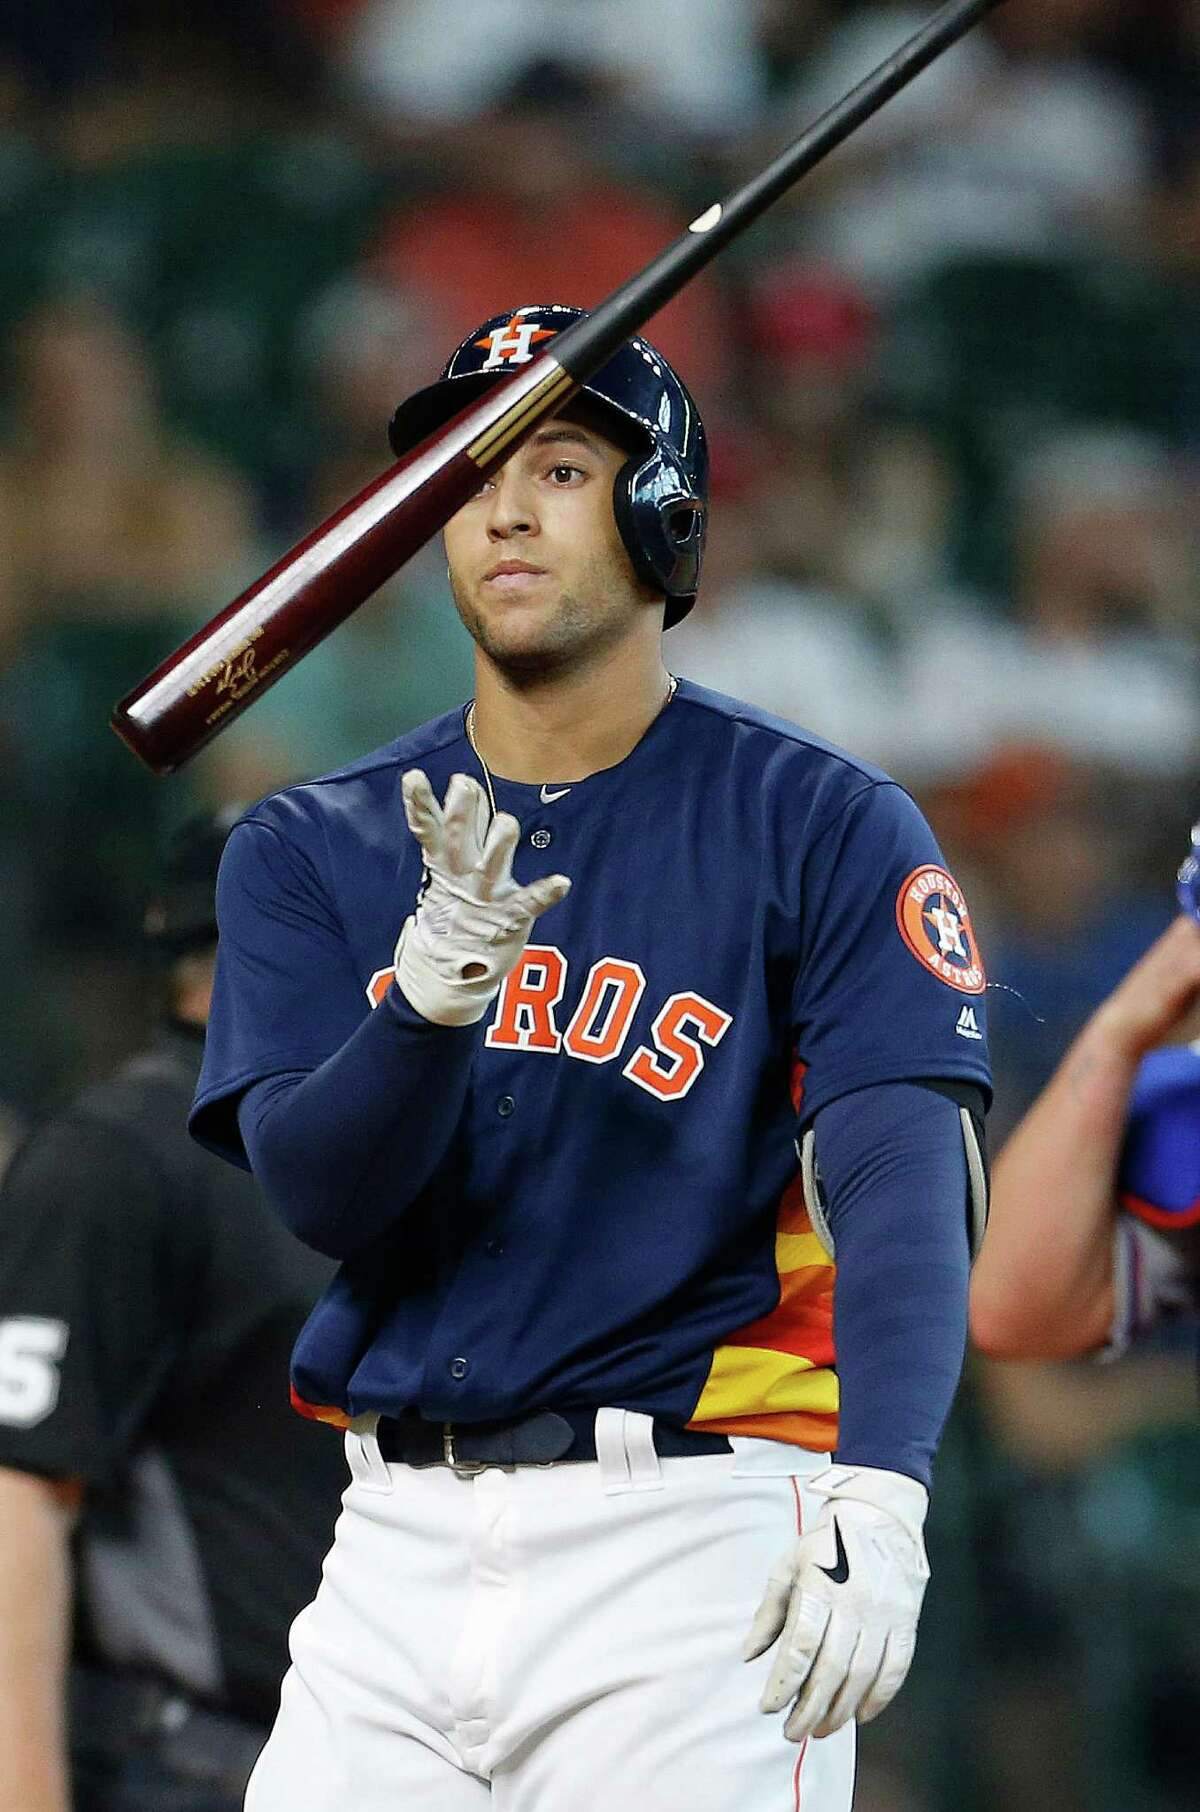 Houston Astros right fielder George Springer (4) reacts after striking out during the eighth inning of an MLB baseball game at Minute Maid Park, Sunday, May 22, 2016. ( Karen Warren / Houston Chronicle )